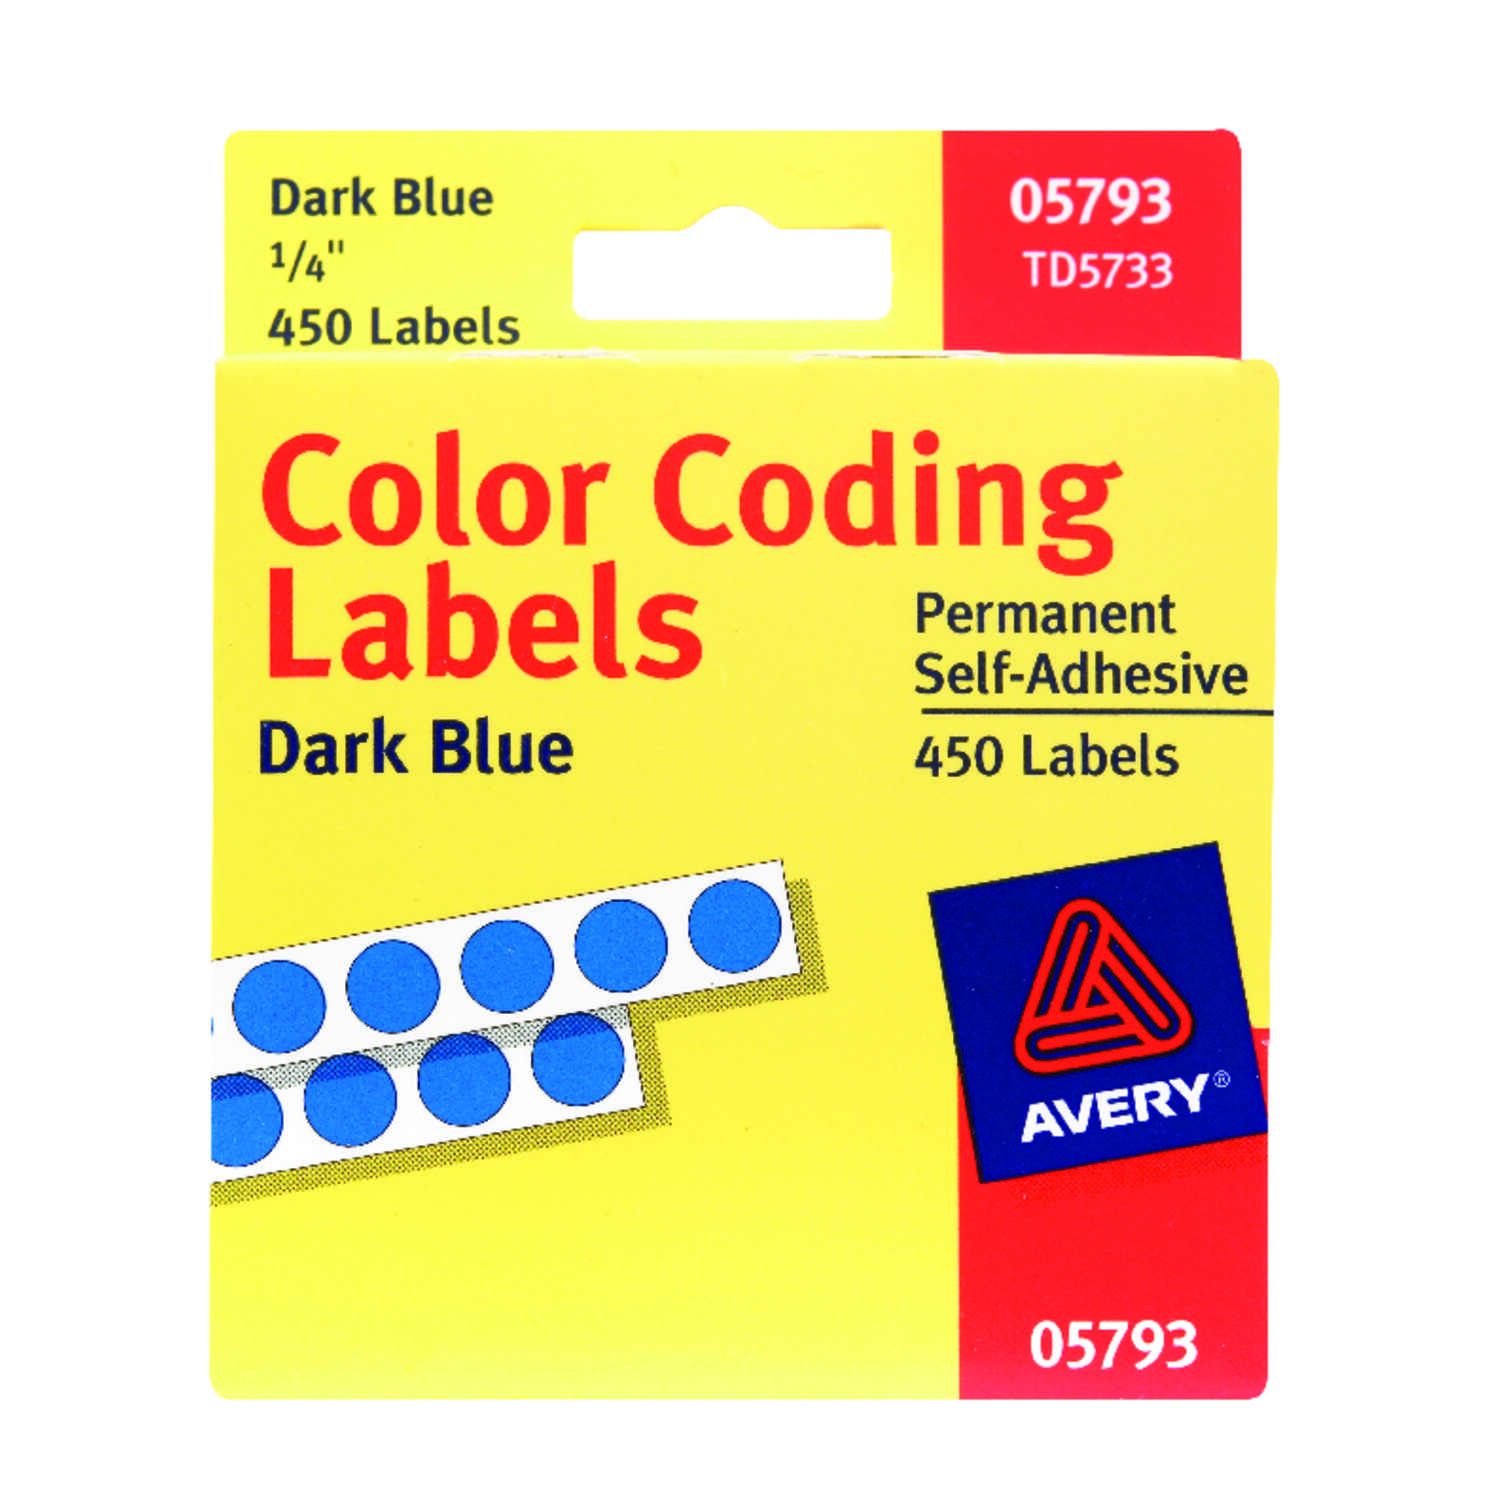 Avery  0.25 in. H x 1/4 in. W Blue  450  Blue  Color Coding Label  Round